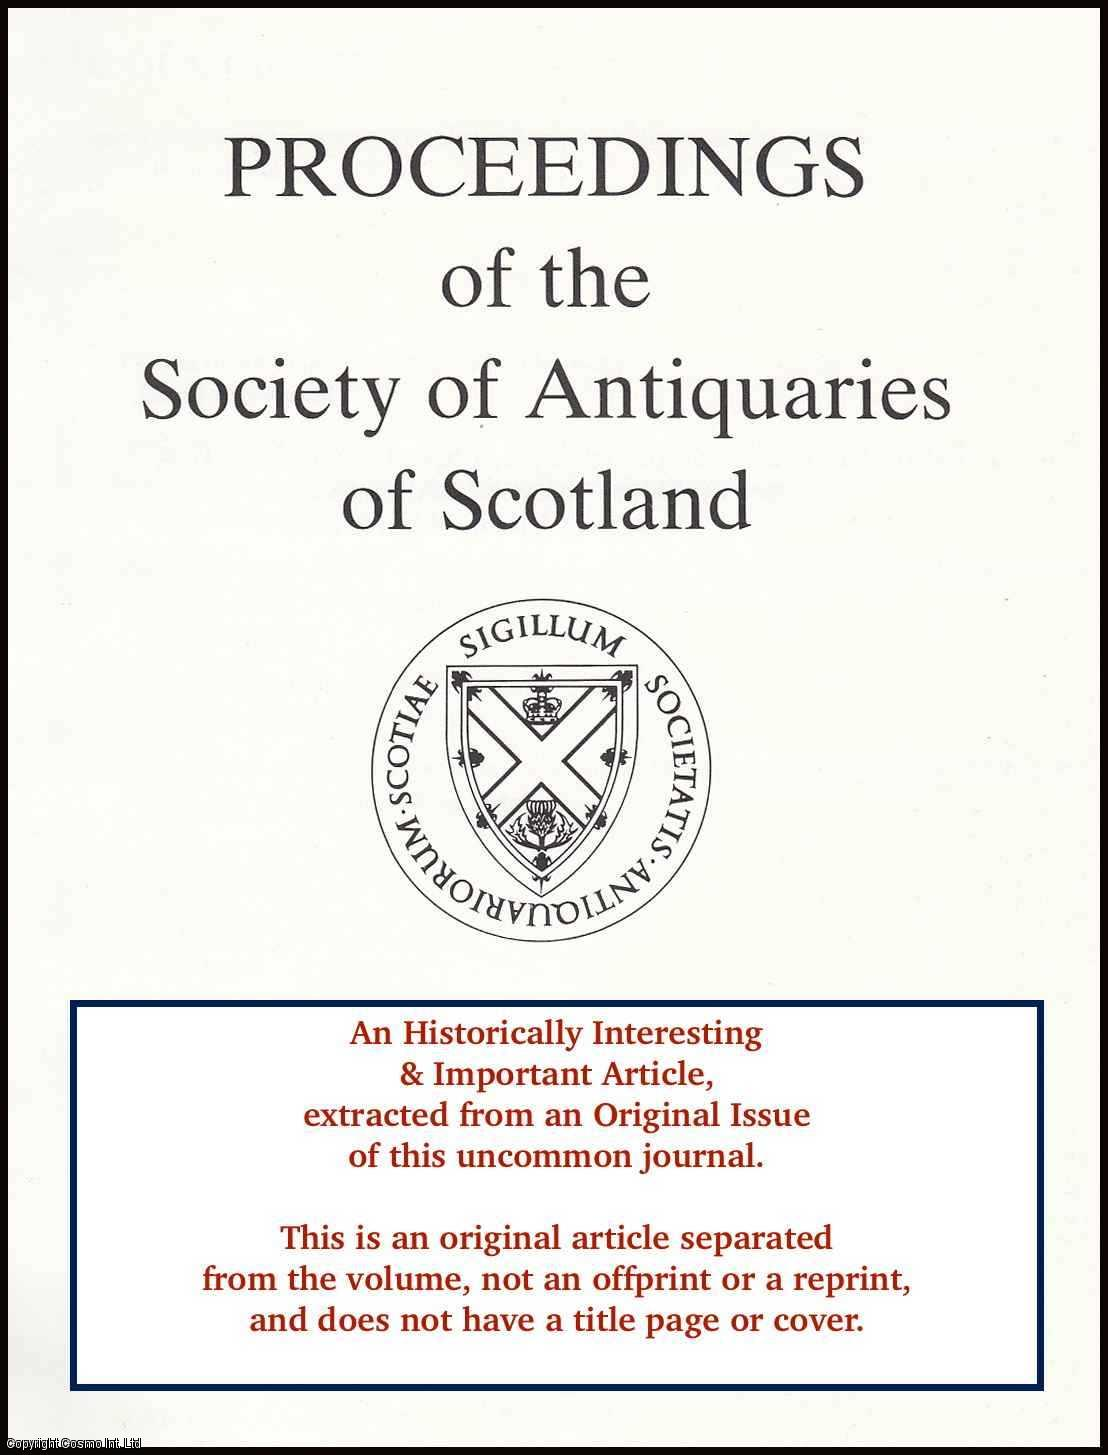 CLOSE-BROOKS, JOANNA - Notes on Museum Acquisitions 1972-4. An original article from the Proceedings of the Society of Antiquaries of Scotland, 1975.